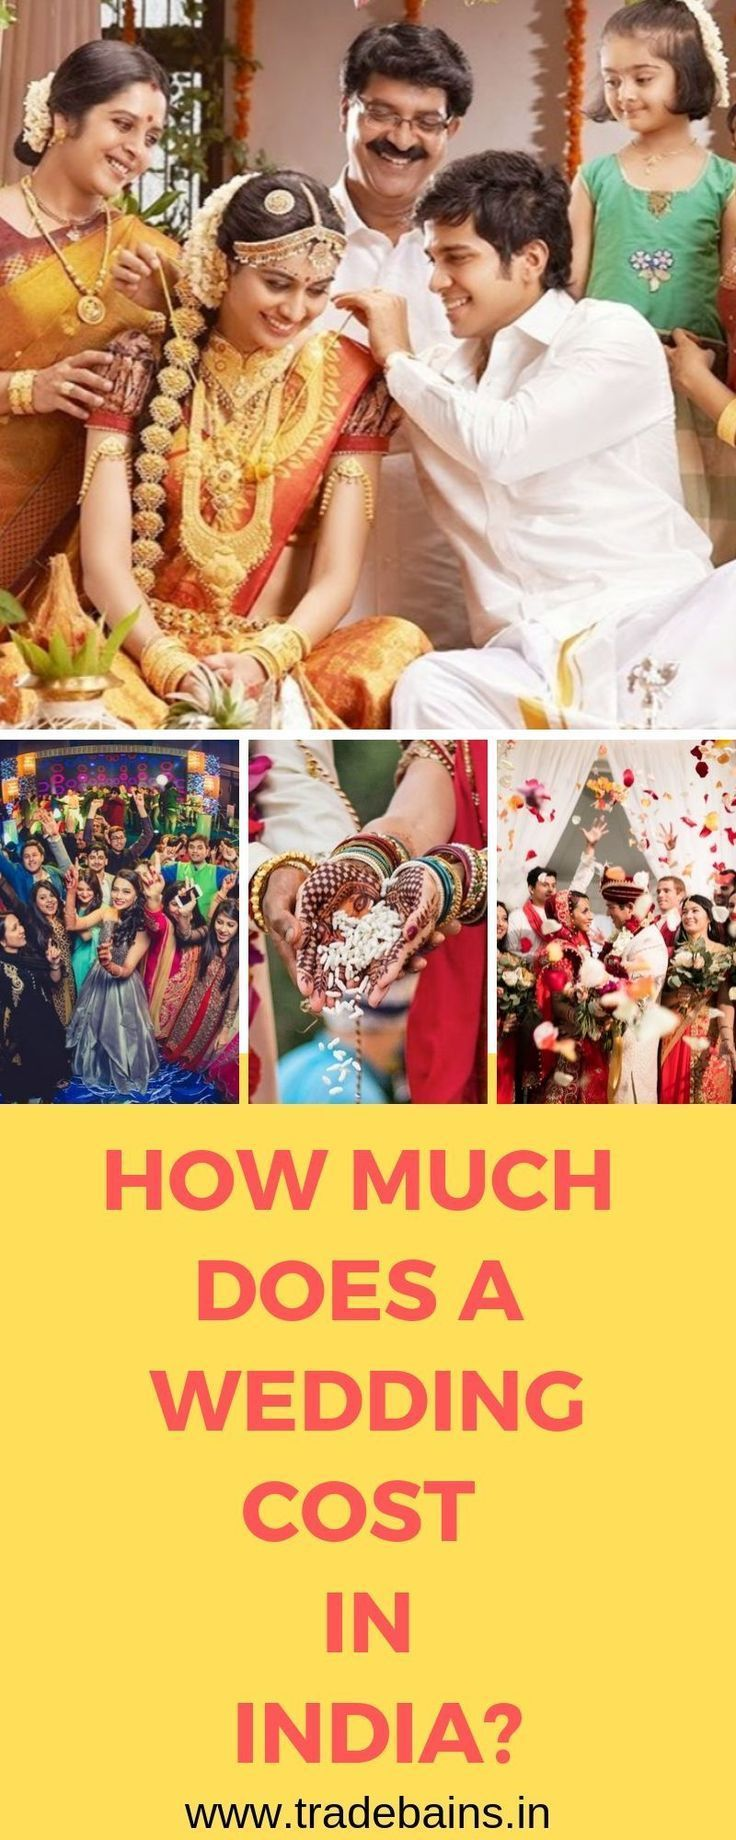 How much does a wedding cost in India? (For average